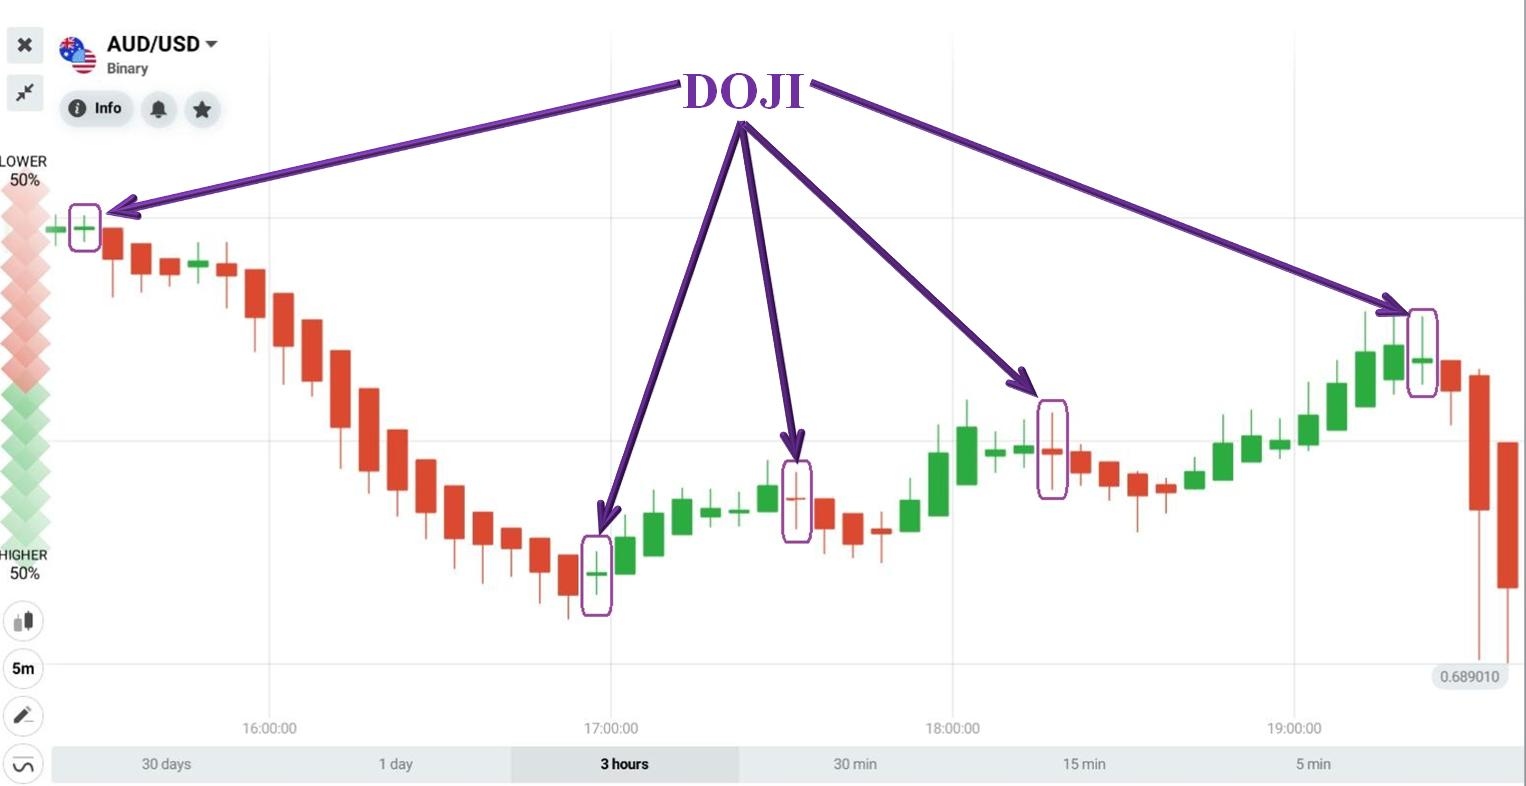 The price creates Heikin Ashi Doji candlesticks